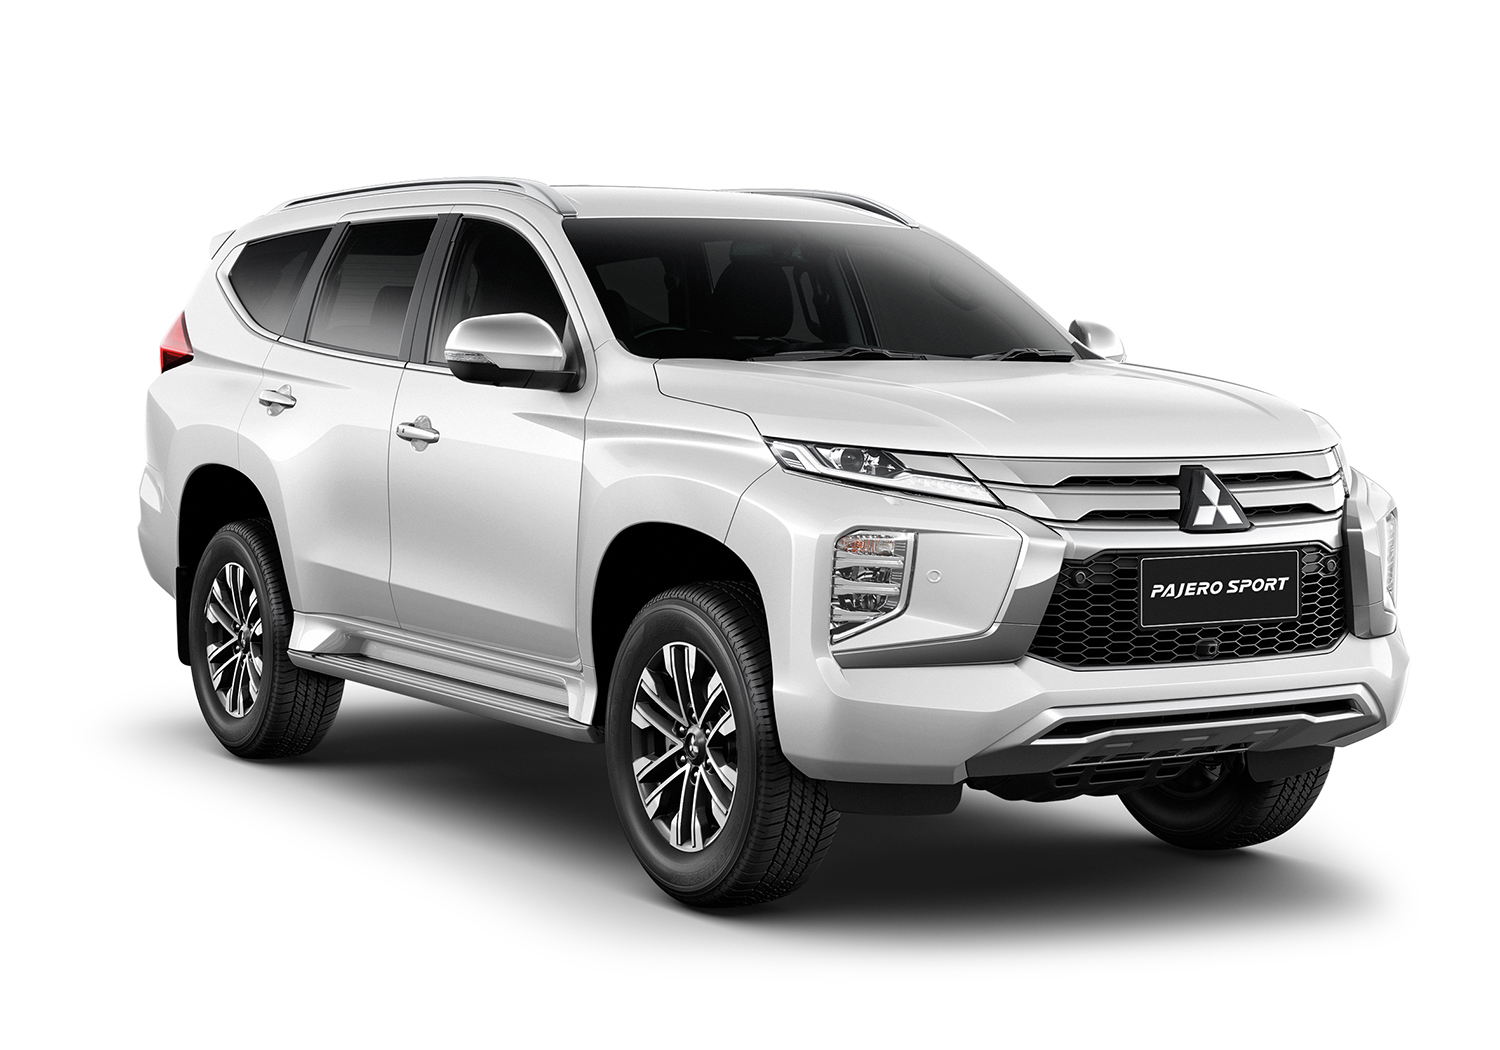 2019 Mitsubishi Pajero Sport facelift: Thai prices and specs